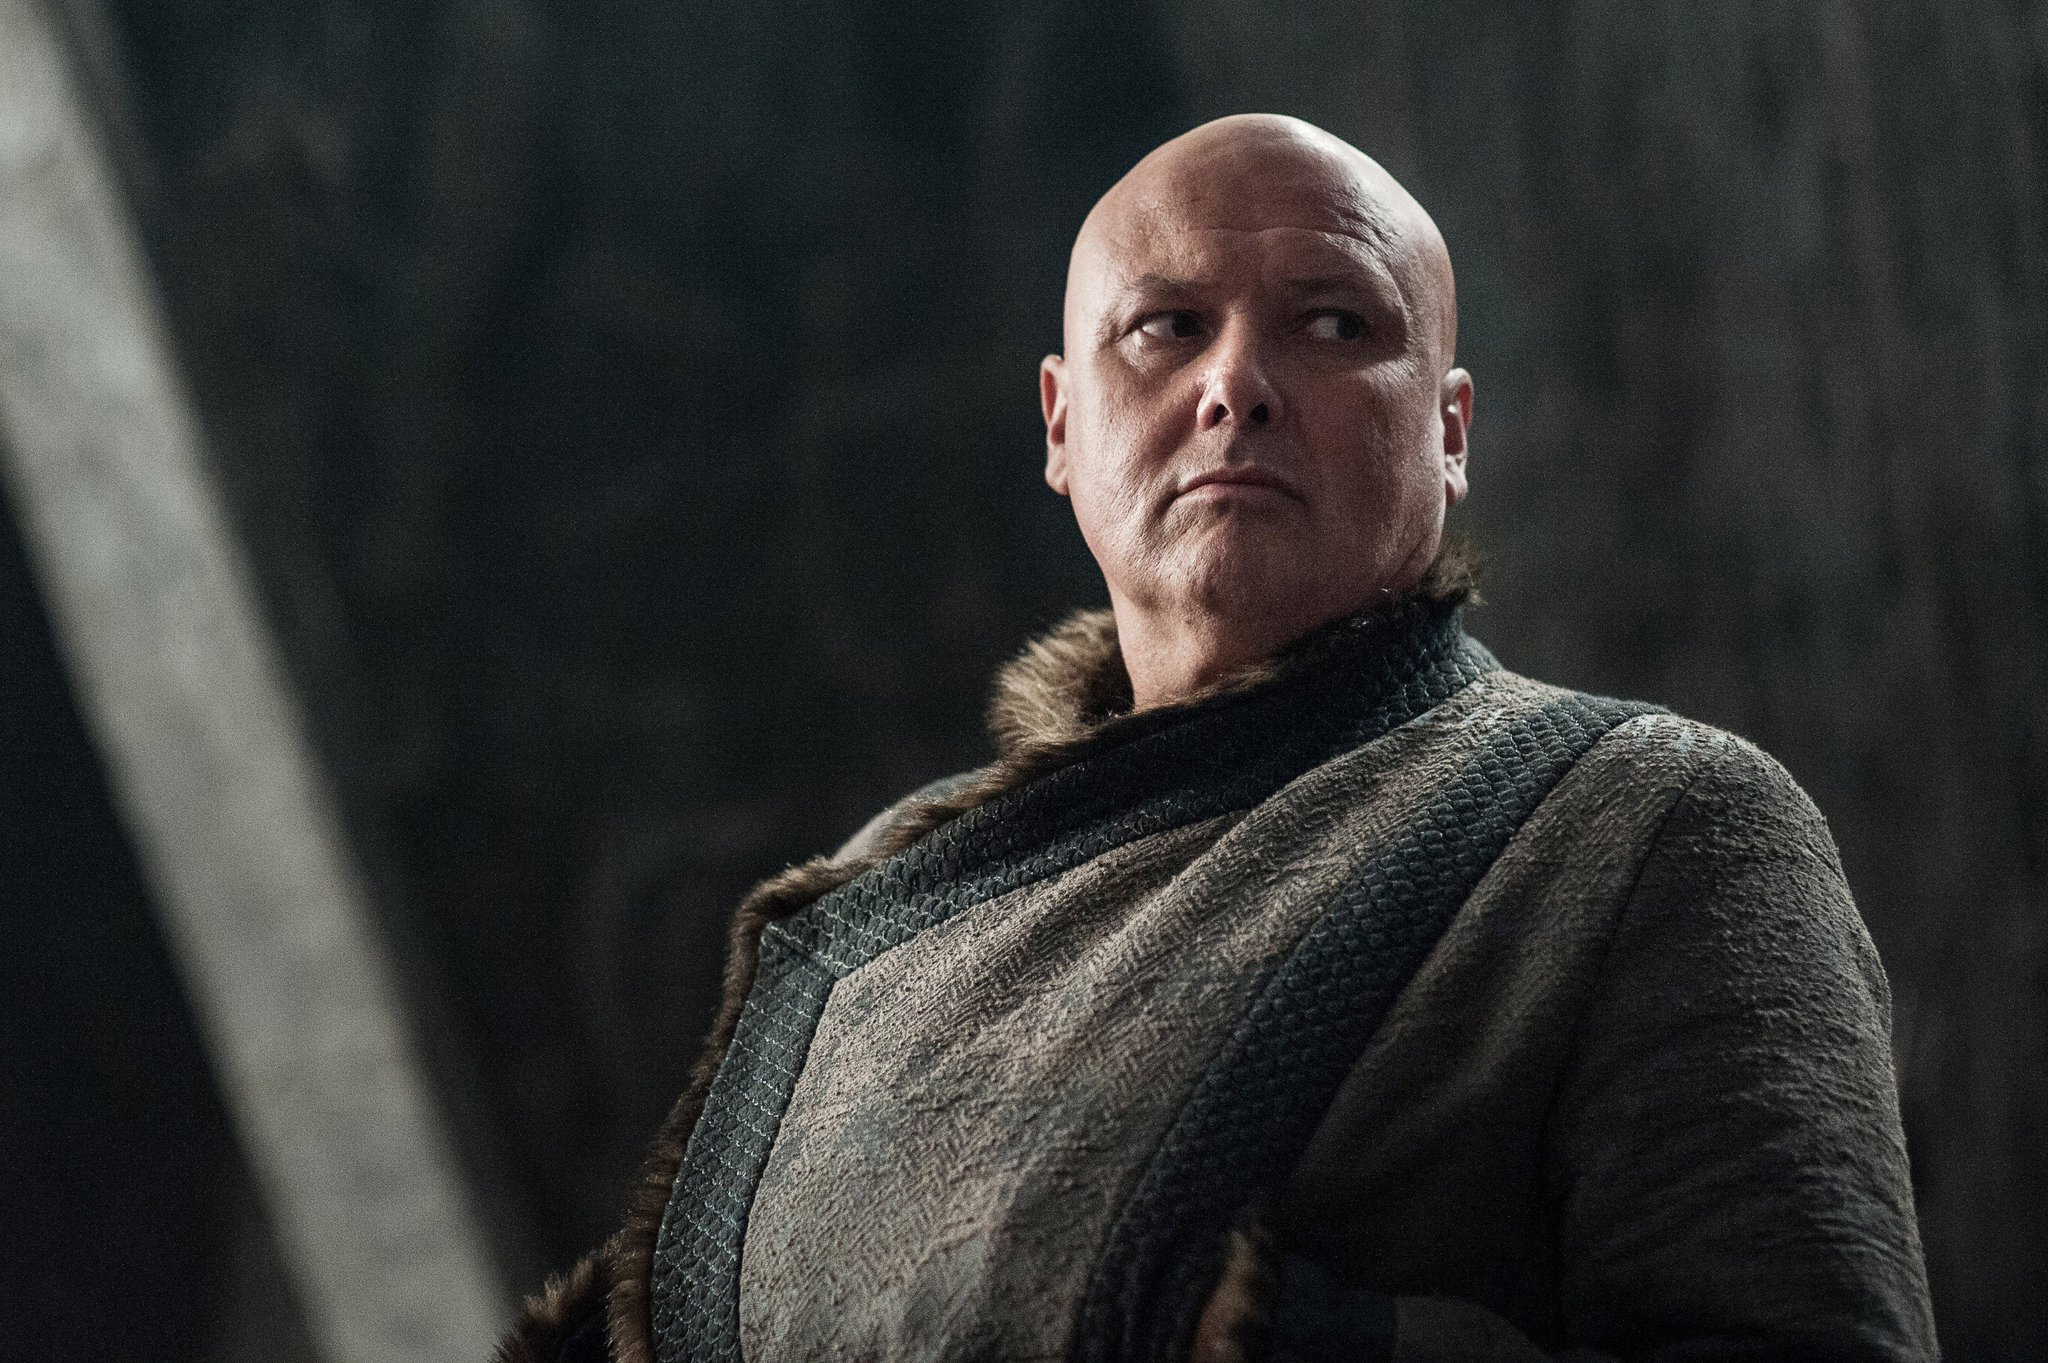 Conleth Hill as Varys. #GoTS7 #GameofThrones (Photo Helen: Sloan/HBO) https://t.co/uxkrYcK5me